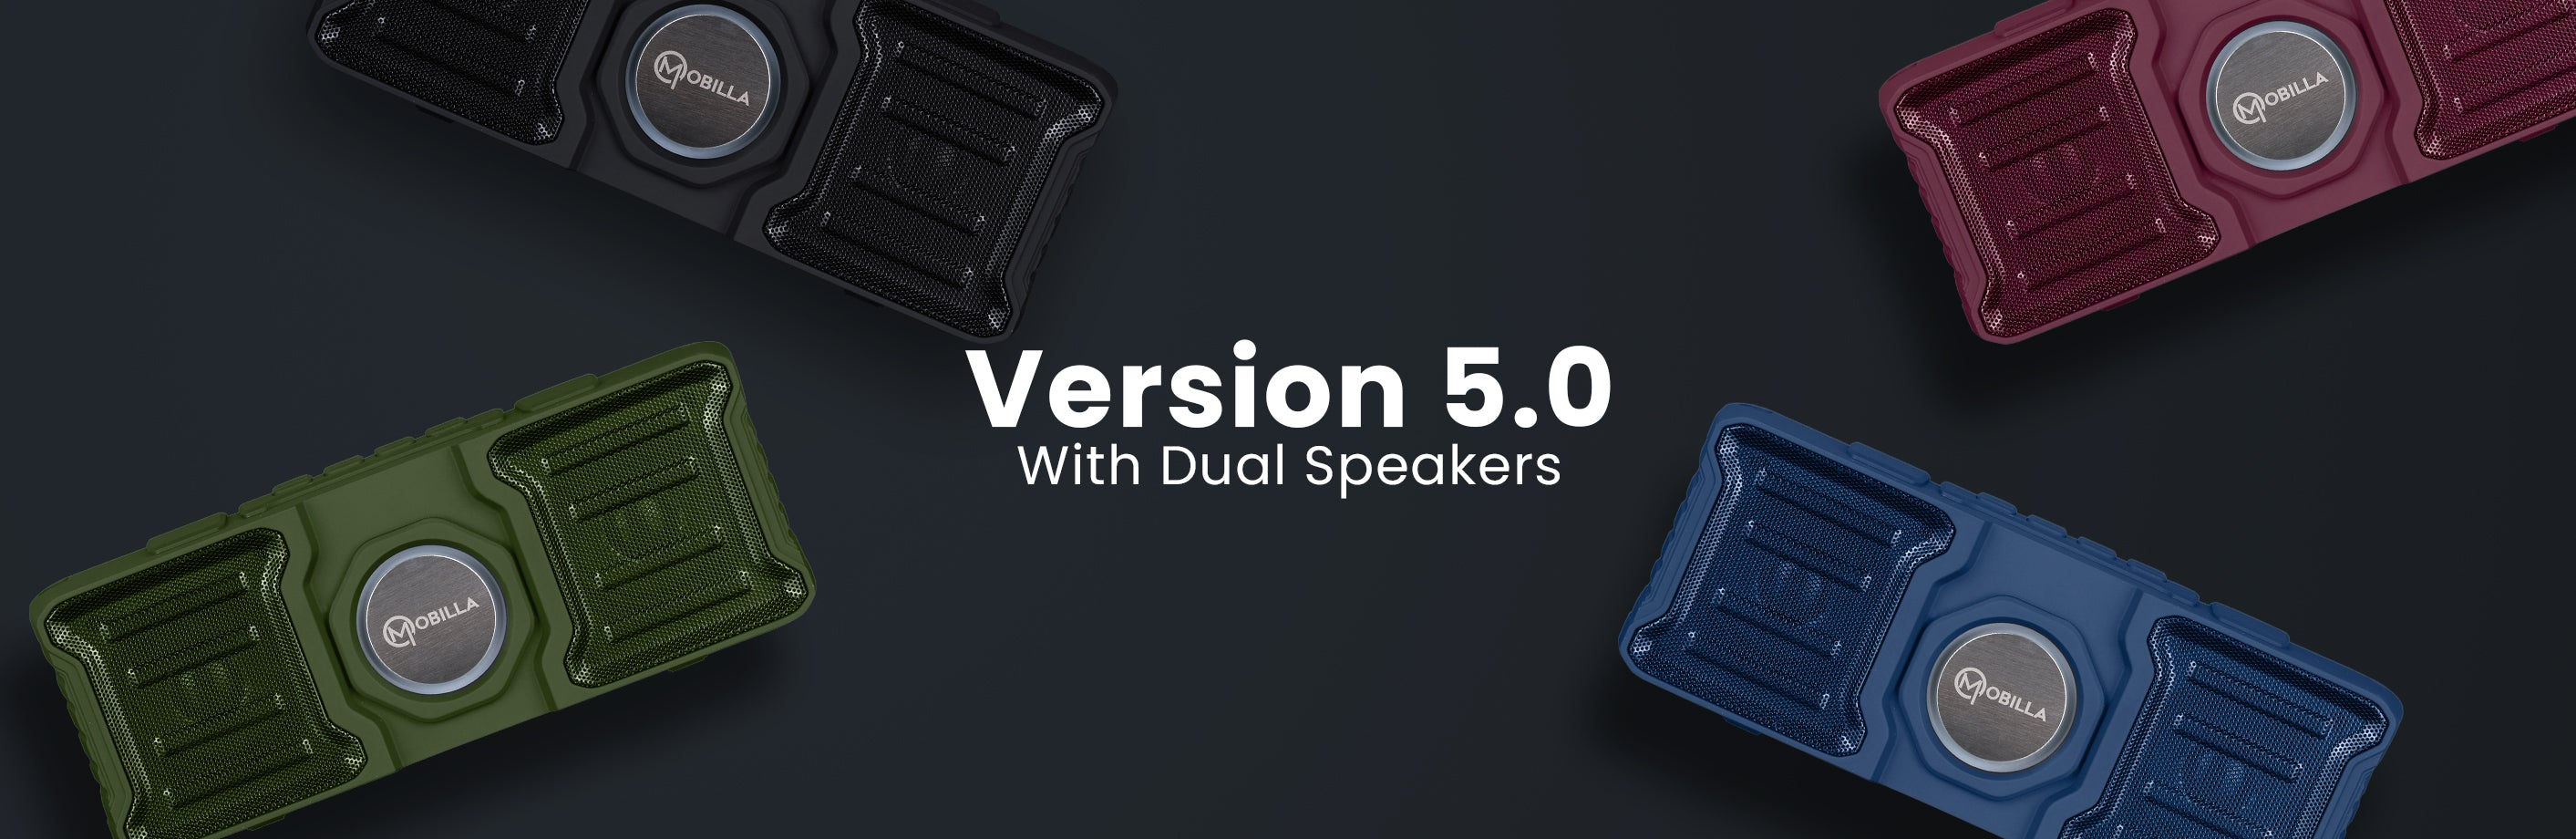 Portable and Dual speaker